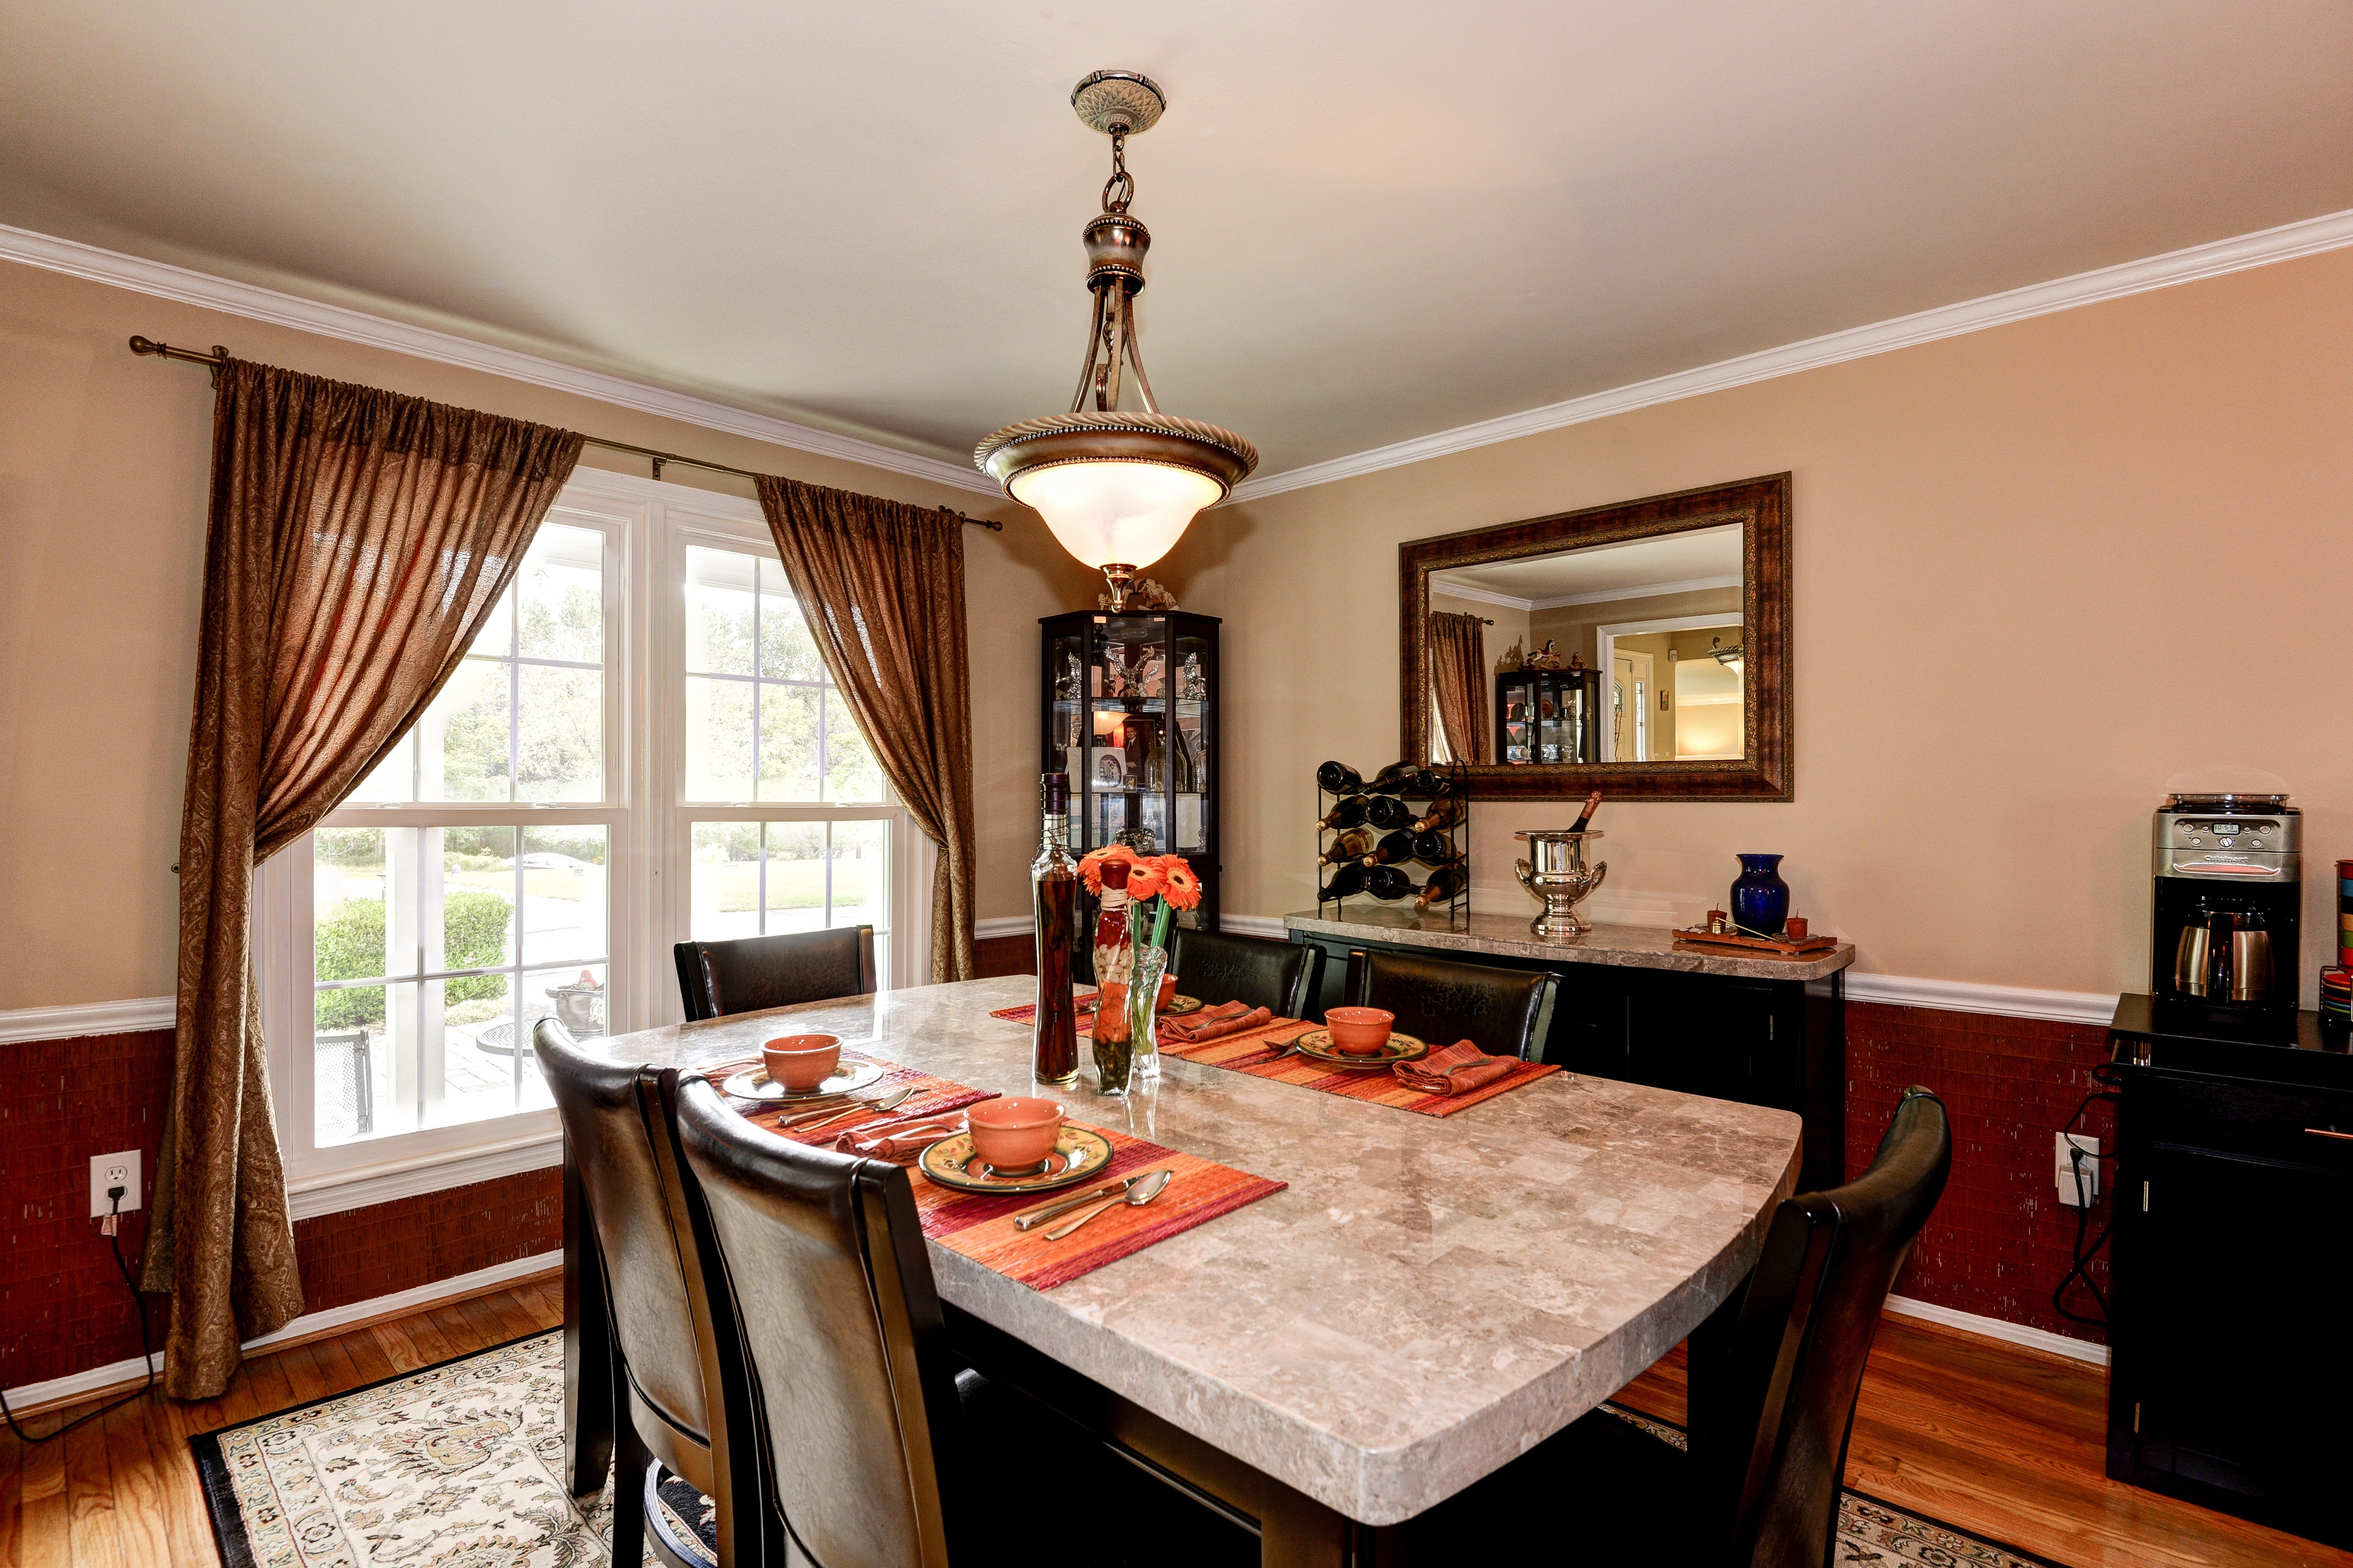 NEW LISTING: Beautiful Home on 1.7 Acre Lot in Fairfax